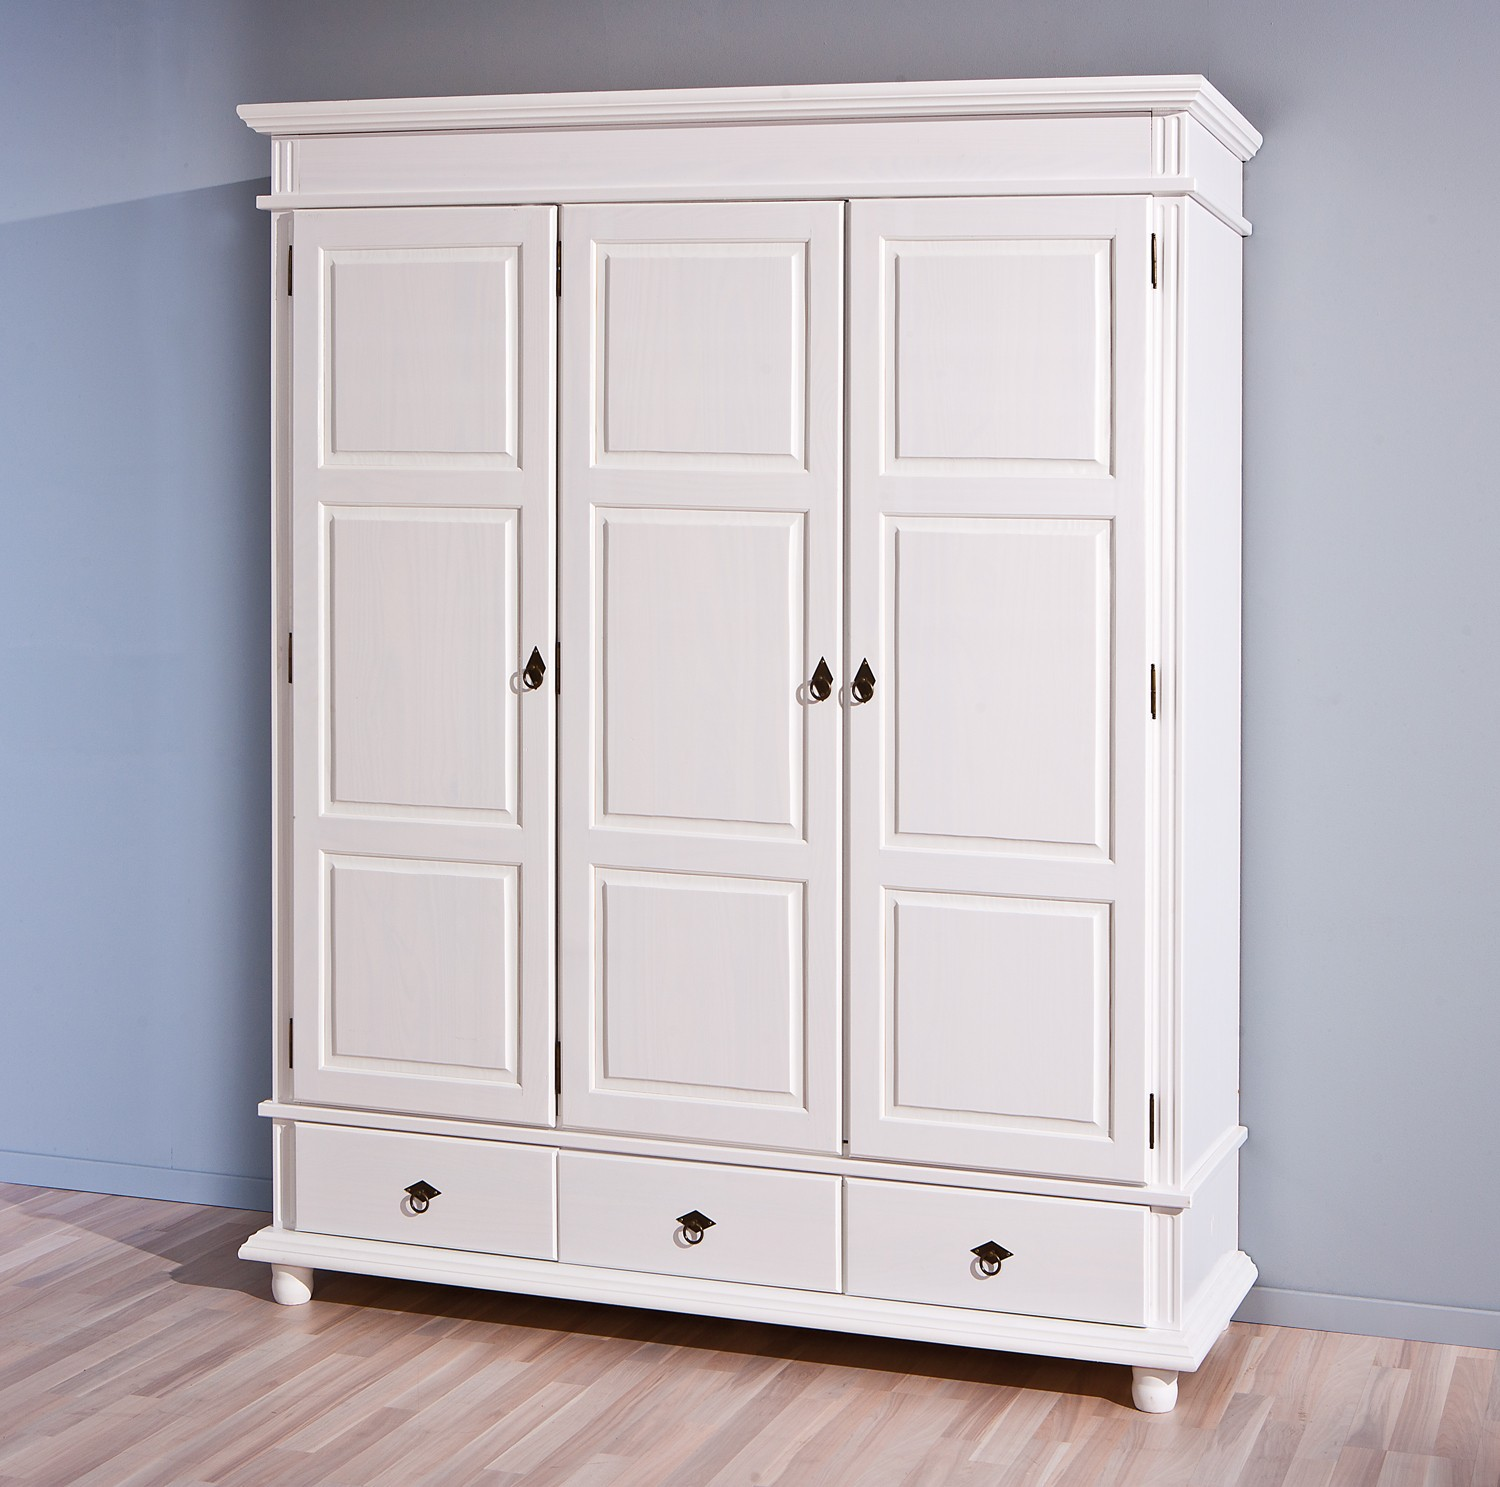 armoire danz blanche 3 portes battantes. Black Bedroom Furniture Sets. Home Design Ideas